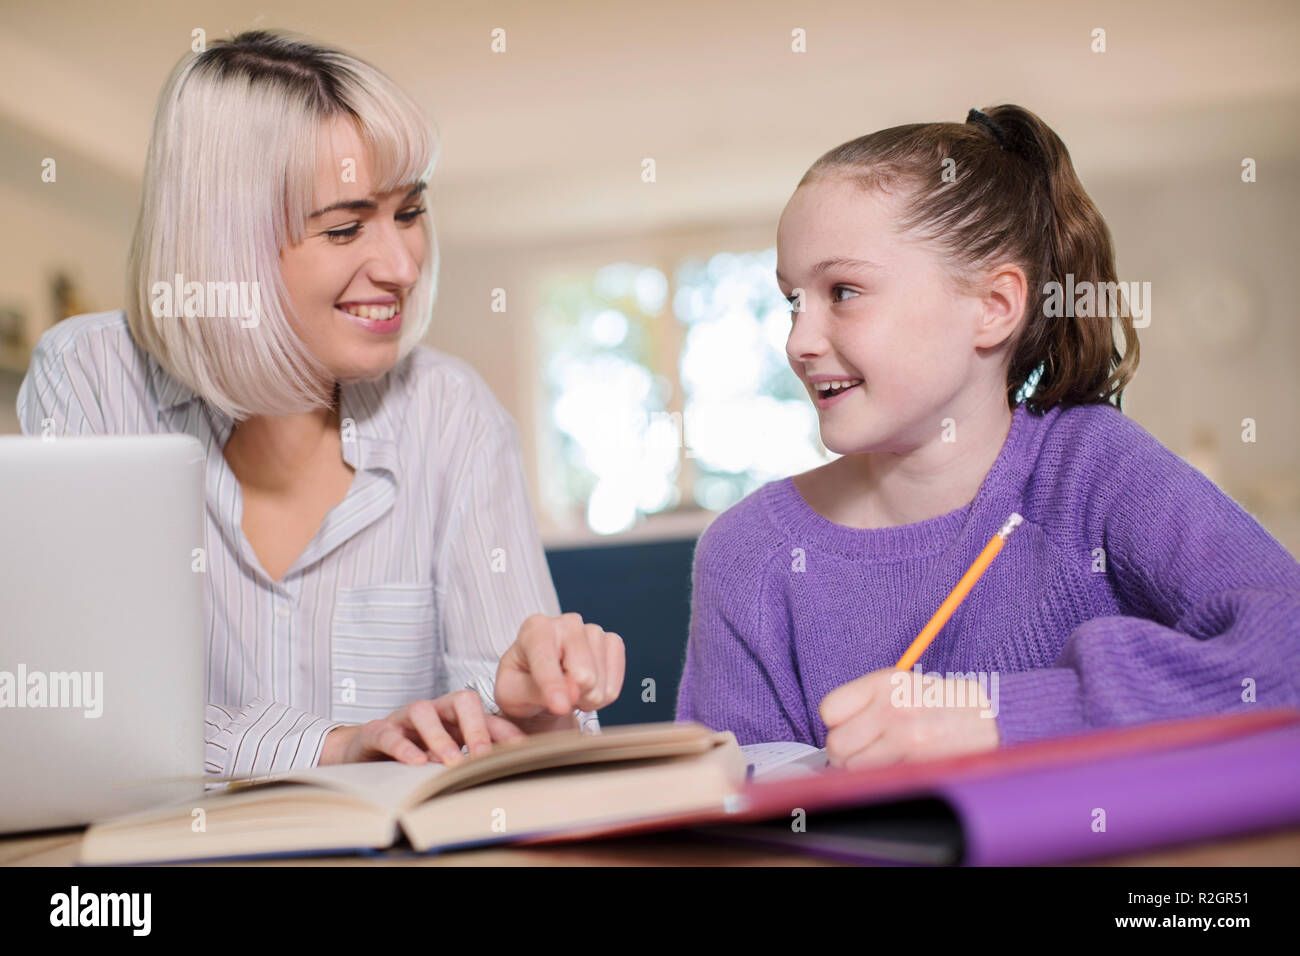 Female Home Tutor Helping Young Girl With Studies - Stock Image